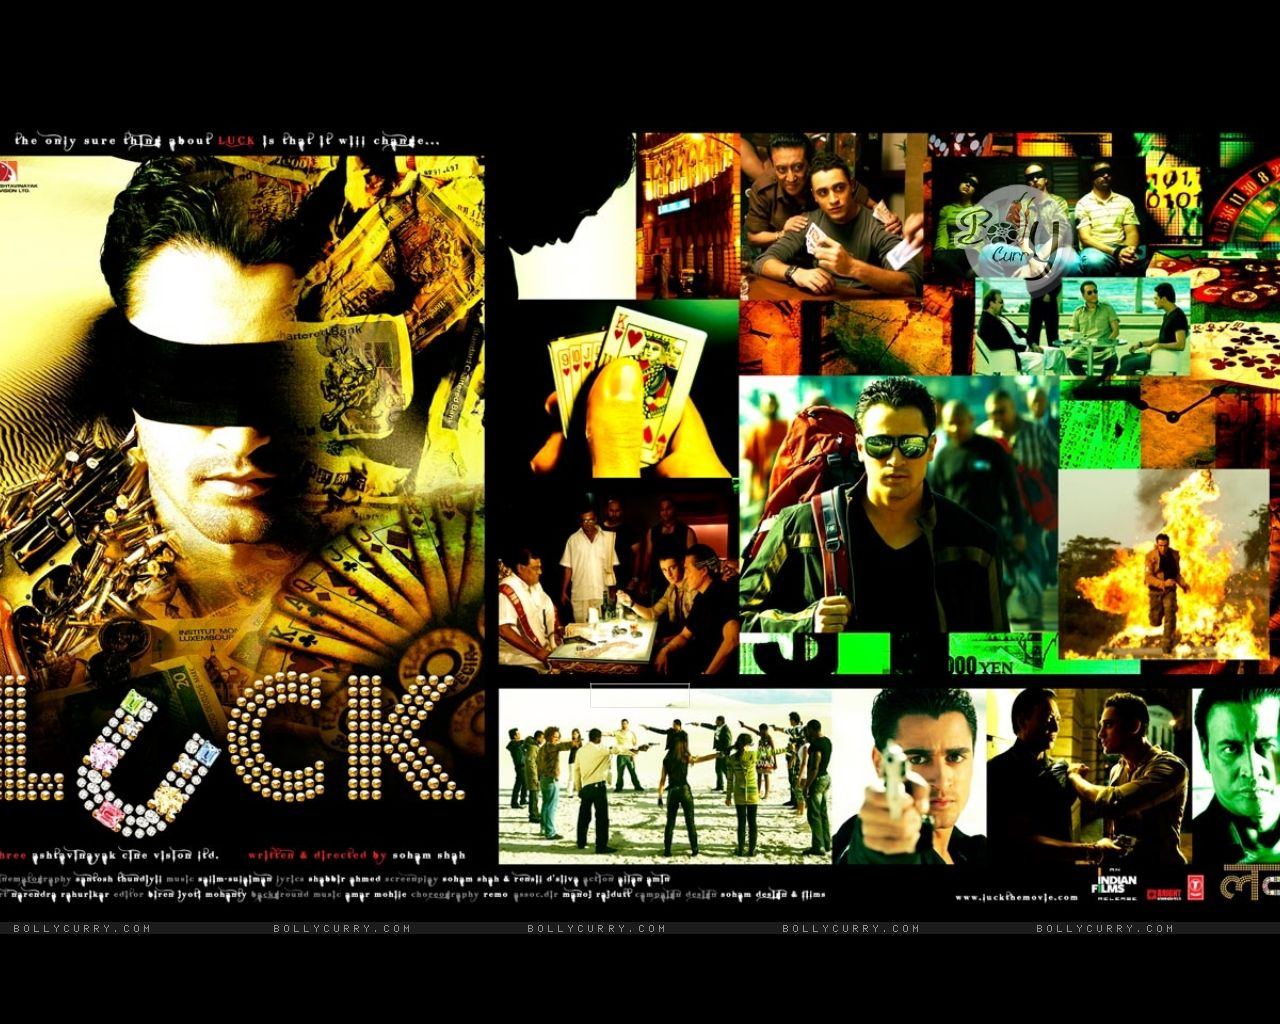 Luck Hindi Full Movie 2009 In Hd Full Video Download In Mp3 Songs And Mp4 3gp Video Luck 2009 Full Hindi Movie Part 1 Hd Sanjay Dutt Imran Khan